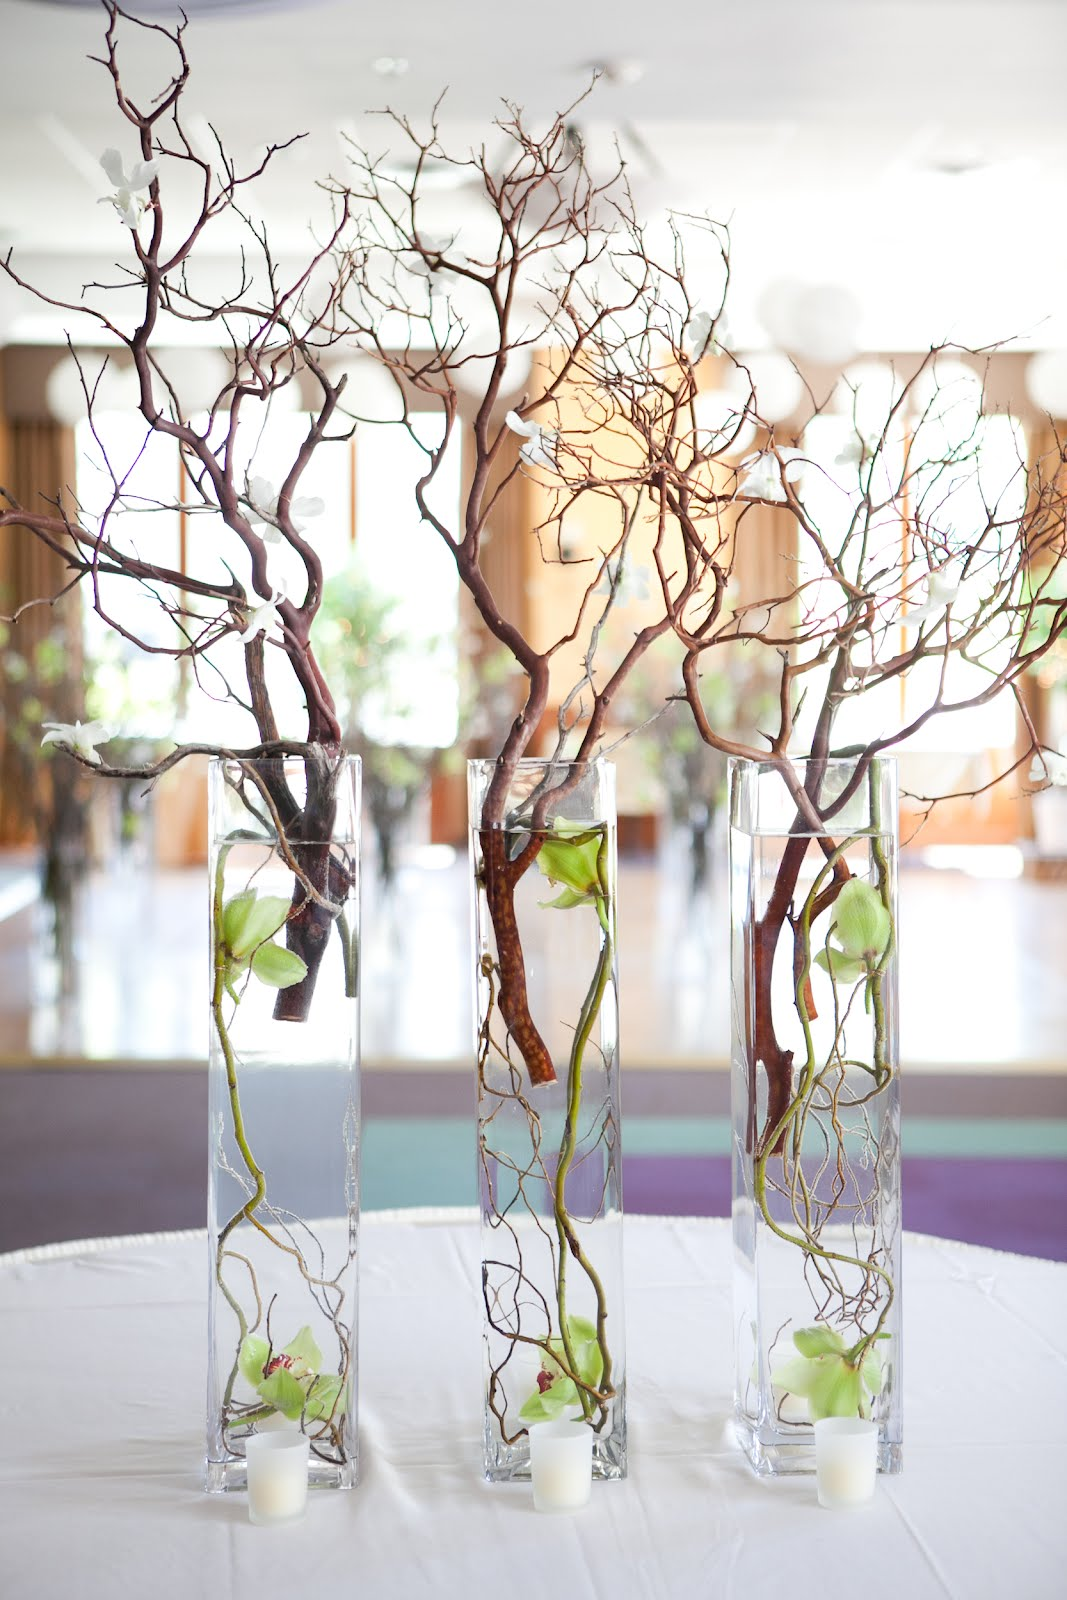 Dana markos events event design and floral styling event for A decoration that is twisted intertwined or curled